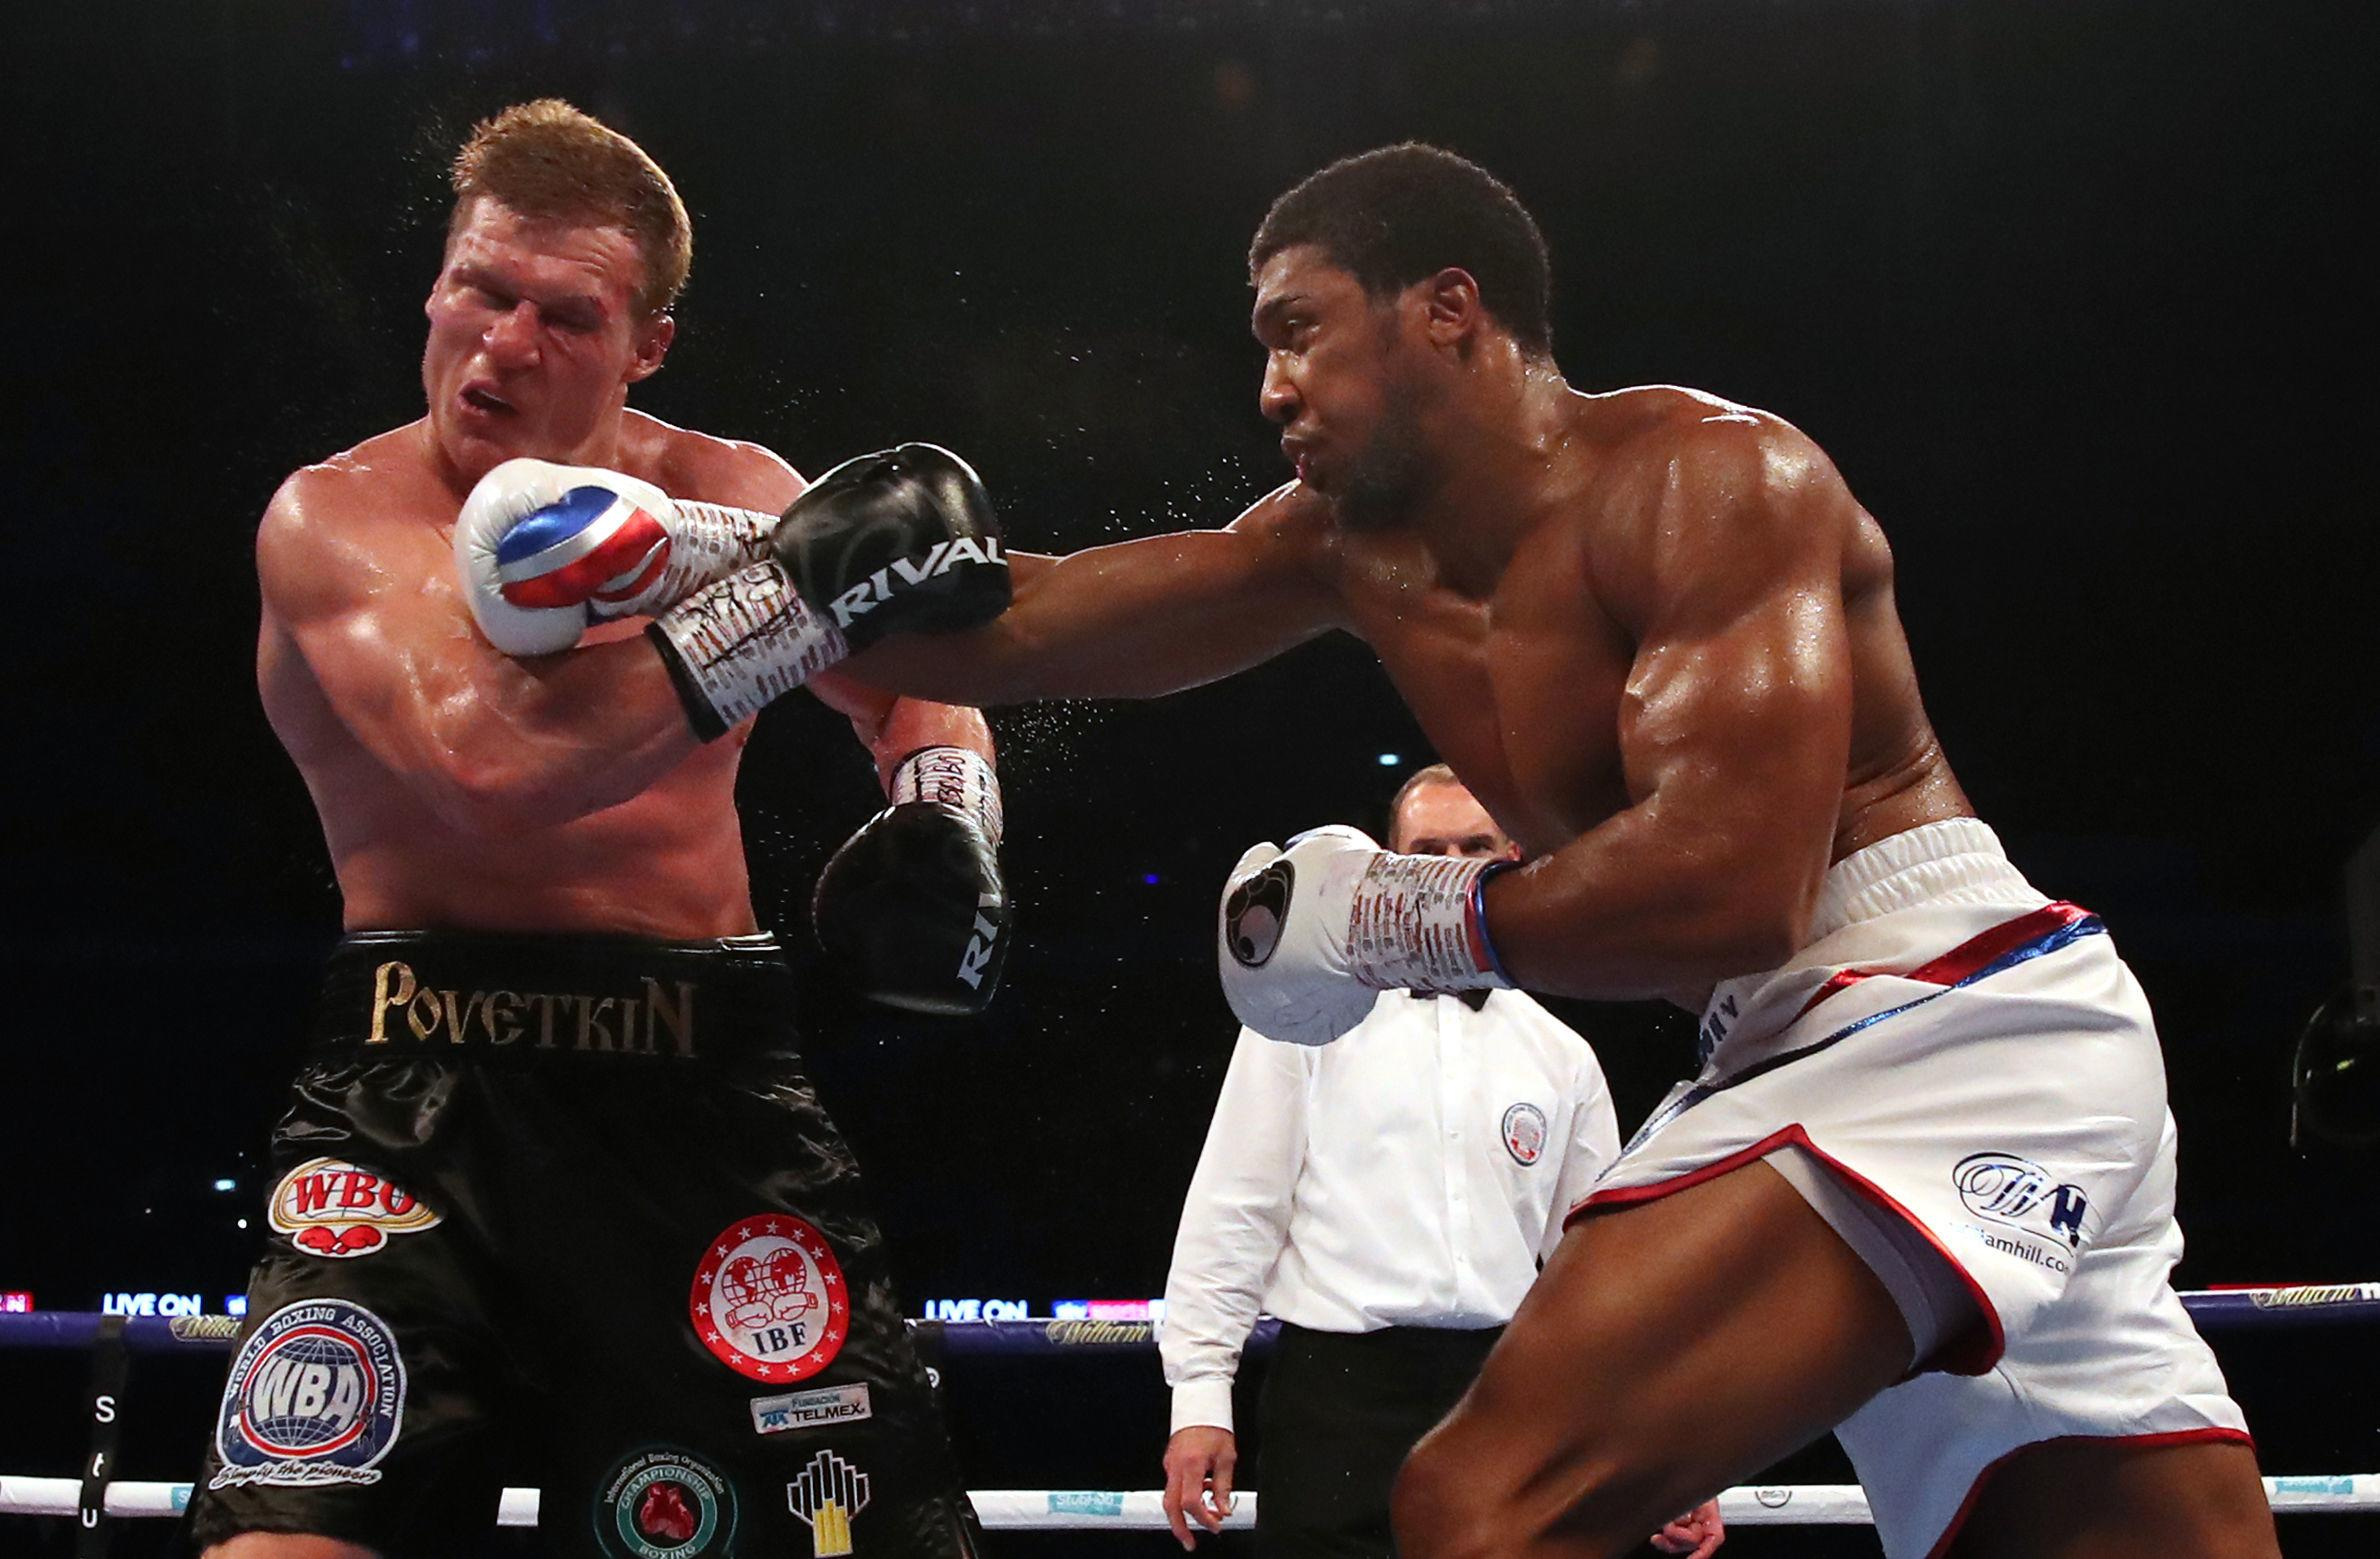 Olympic gold medallist Joshua extended his unbeaten record to 22-0